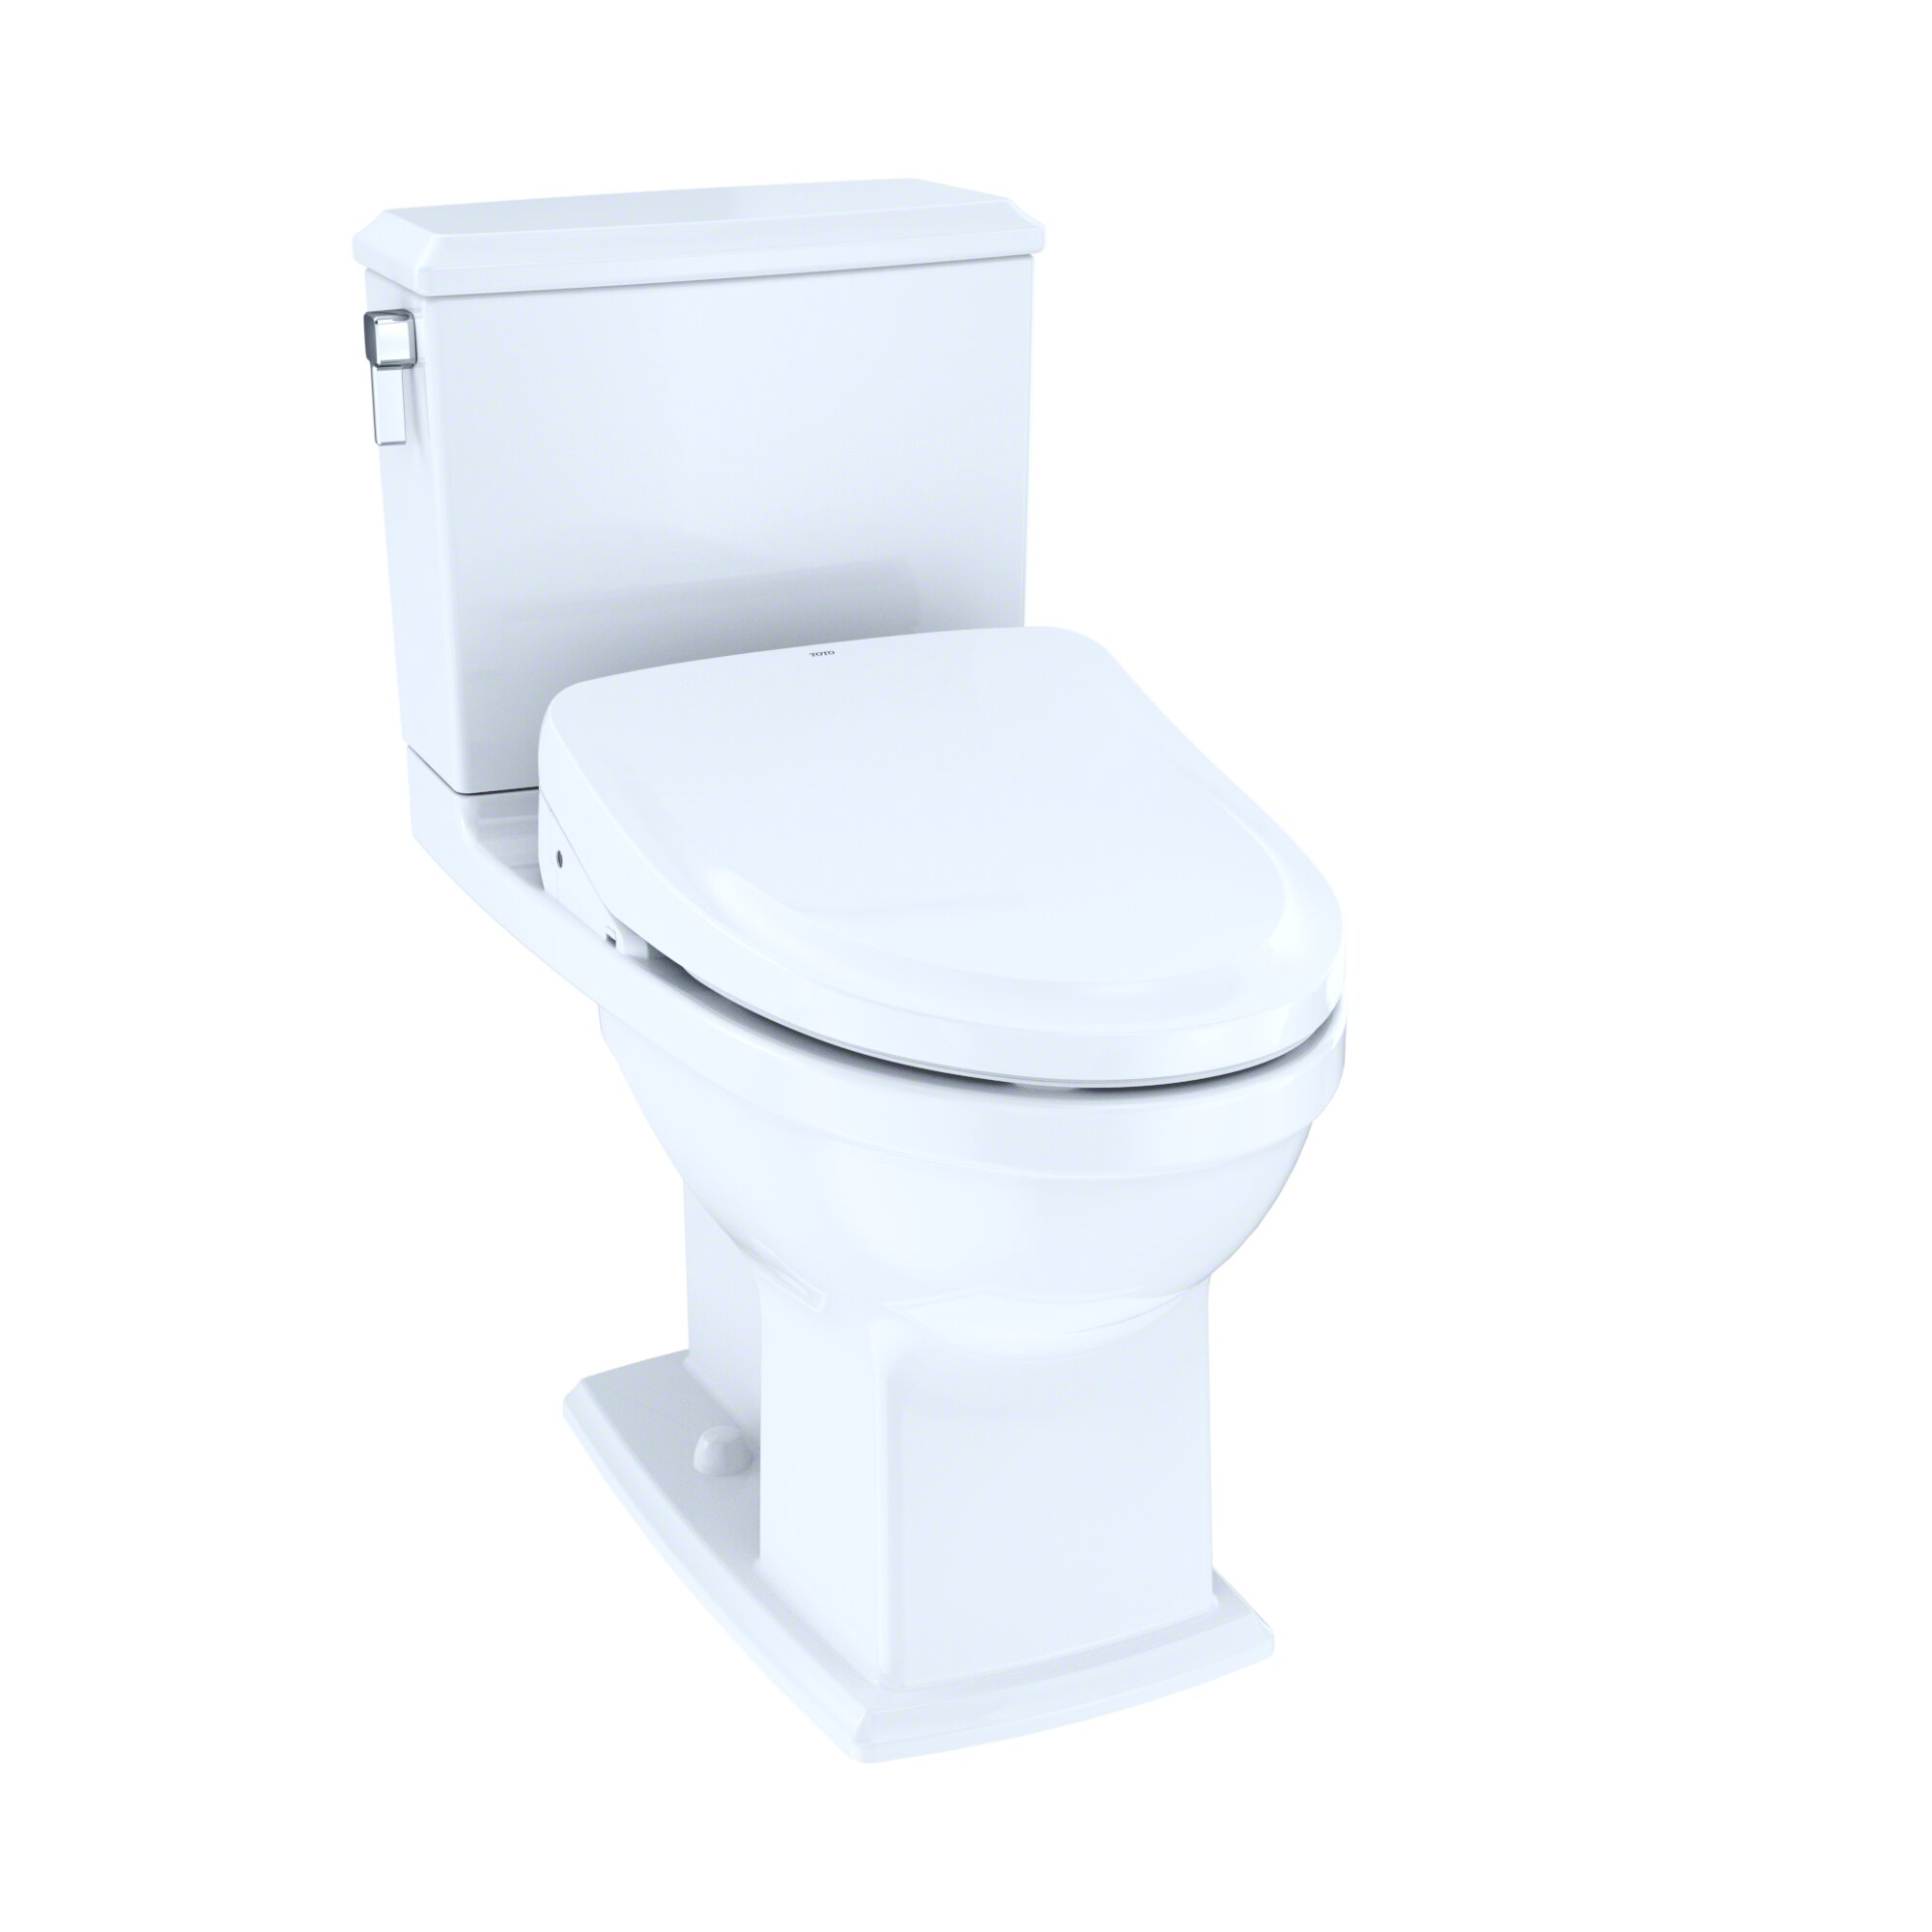 Toto Connelly Dual Flush Elongated Two Piece Toilet With Ewater Wayfair